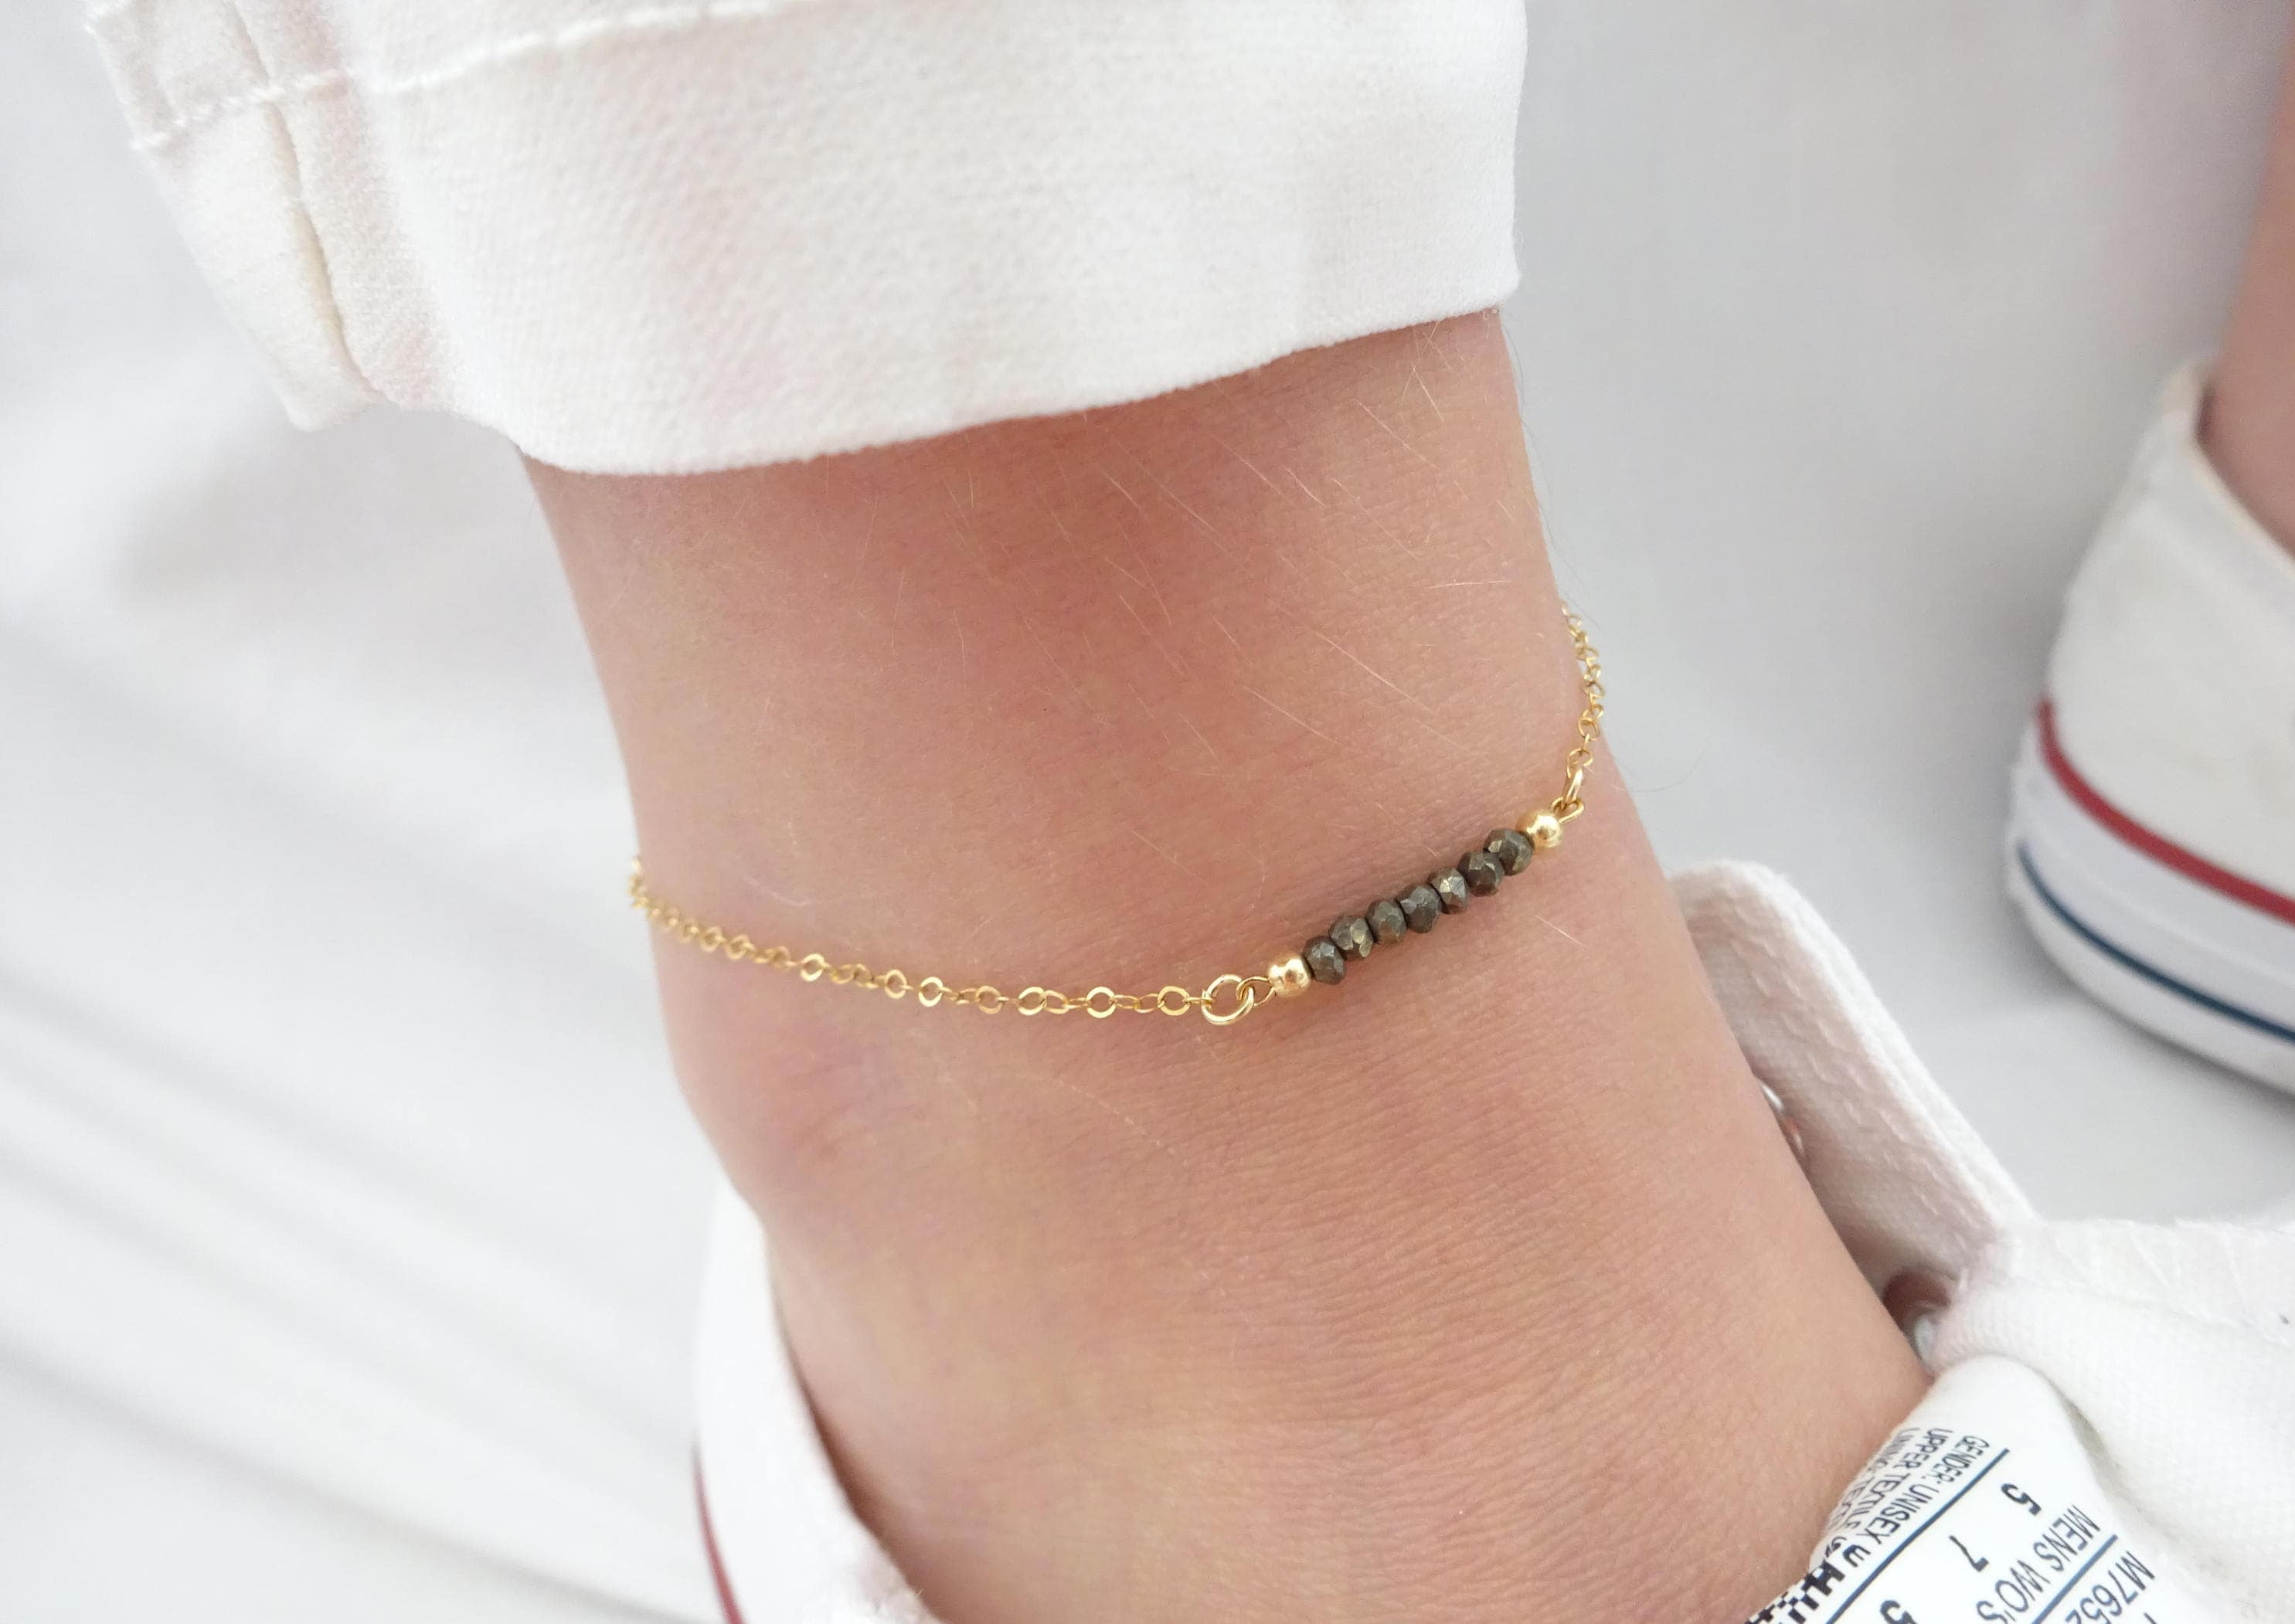 anklet gold cut love personalized choker necklace bead diamond rubystella rg solid rose